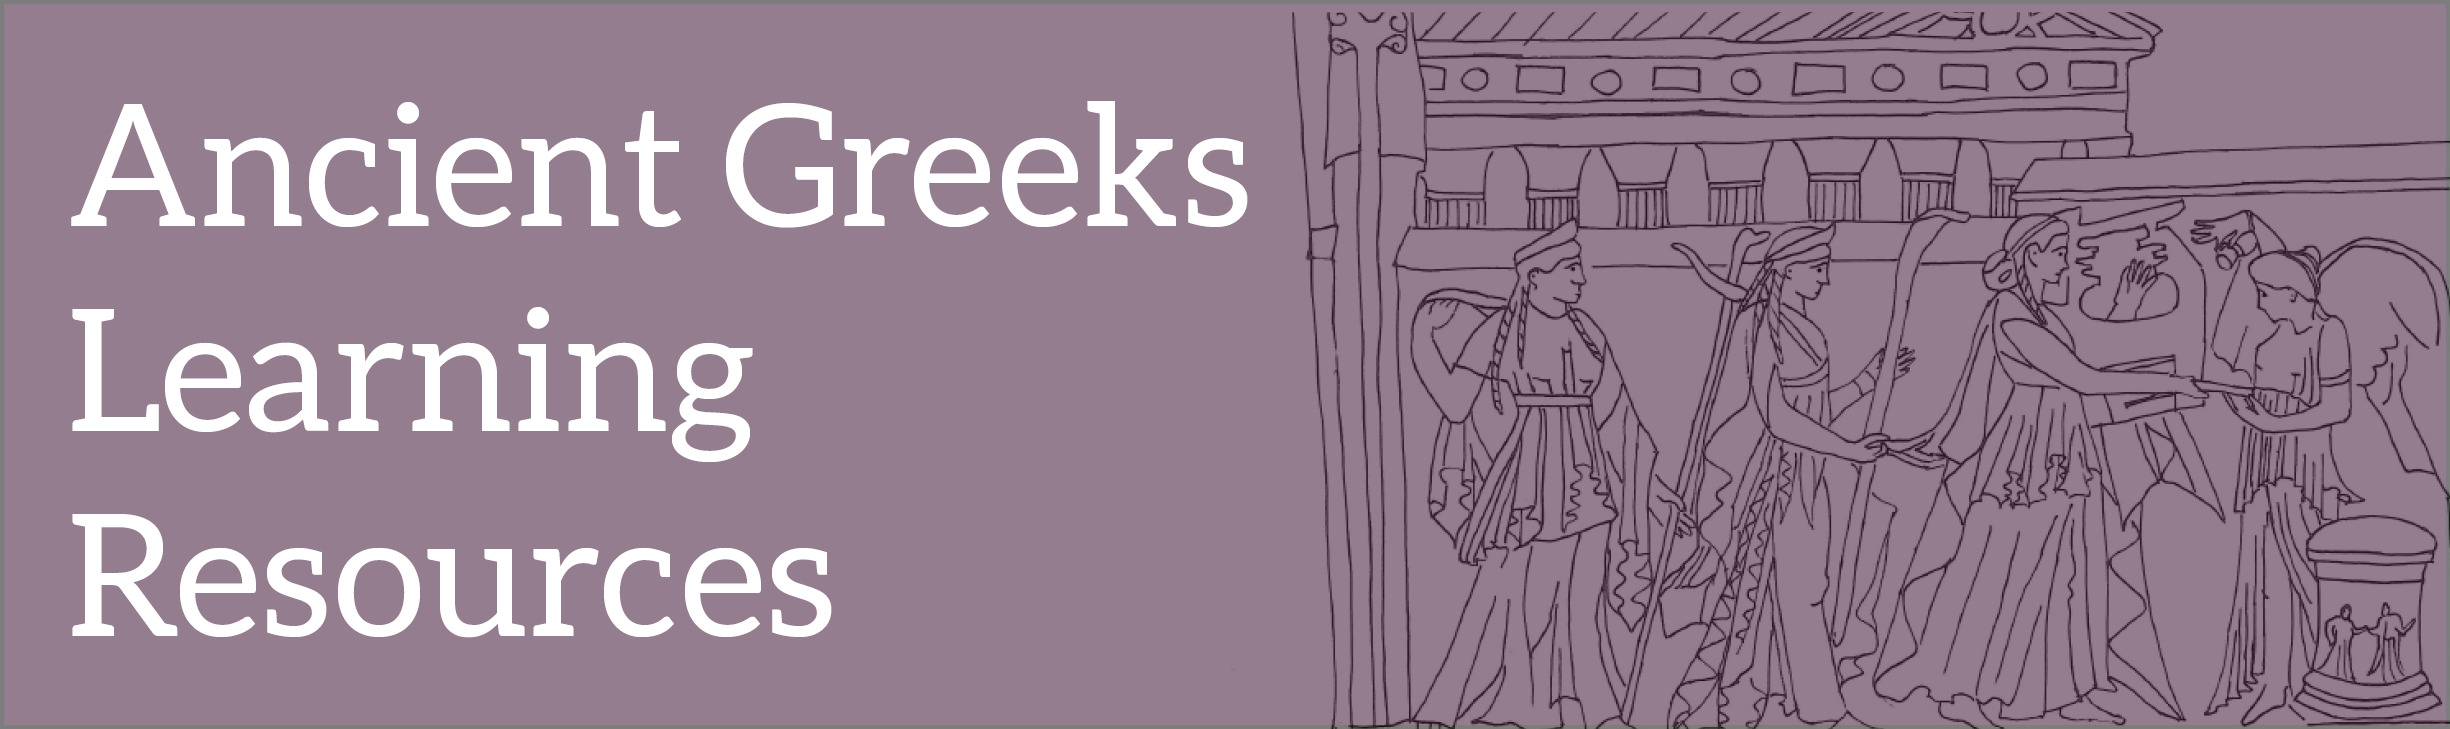 Ancient Greeks learning resources